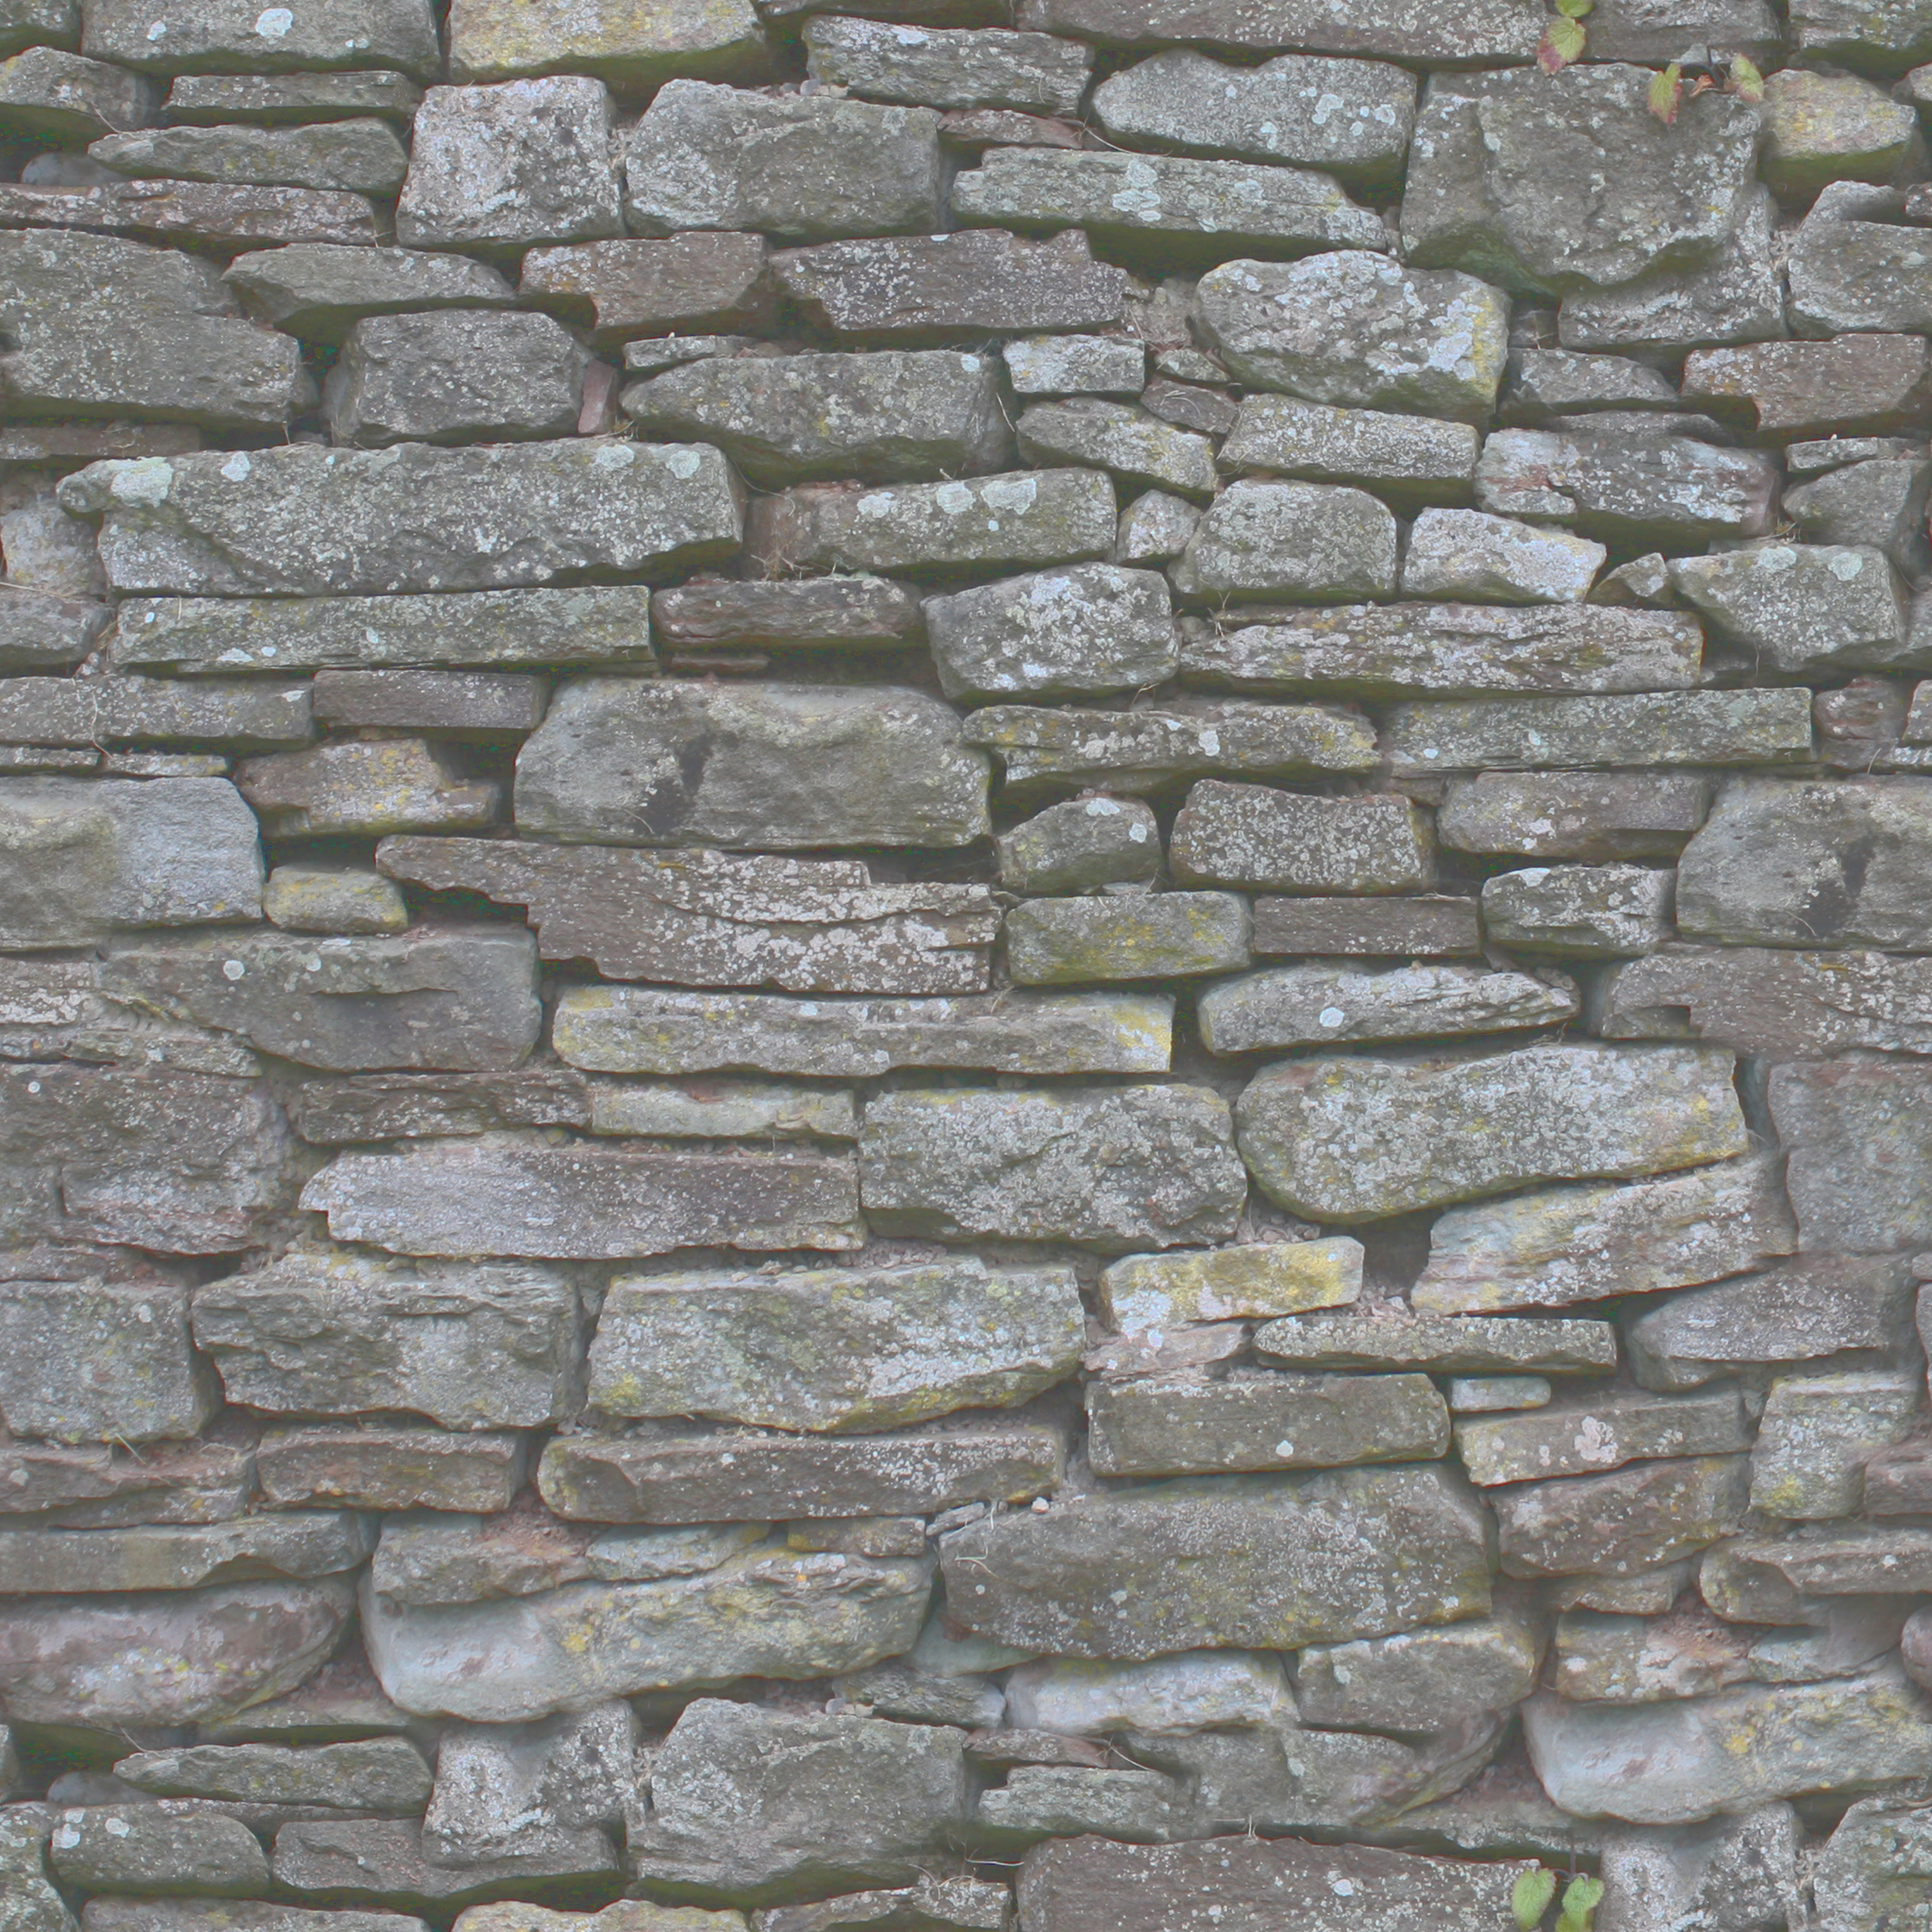 Download The Groutless Brick Texture V2 For Free | FrogModel